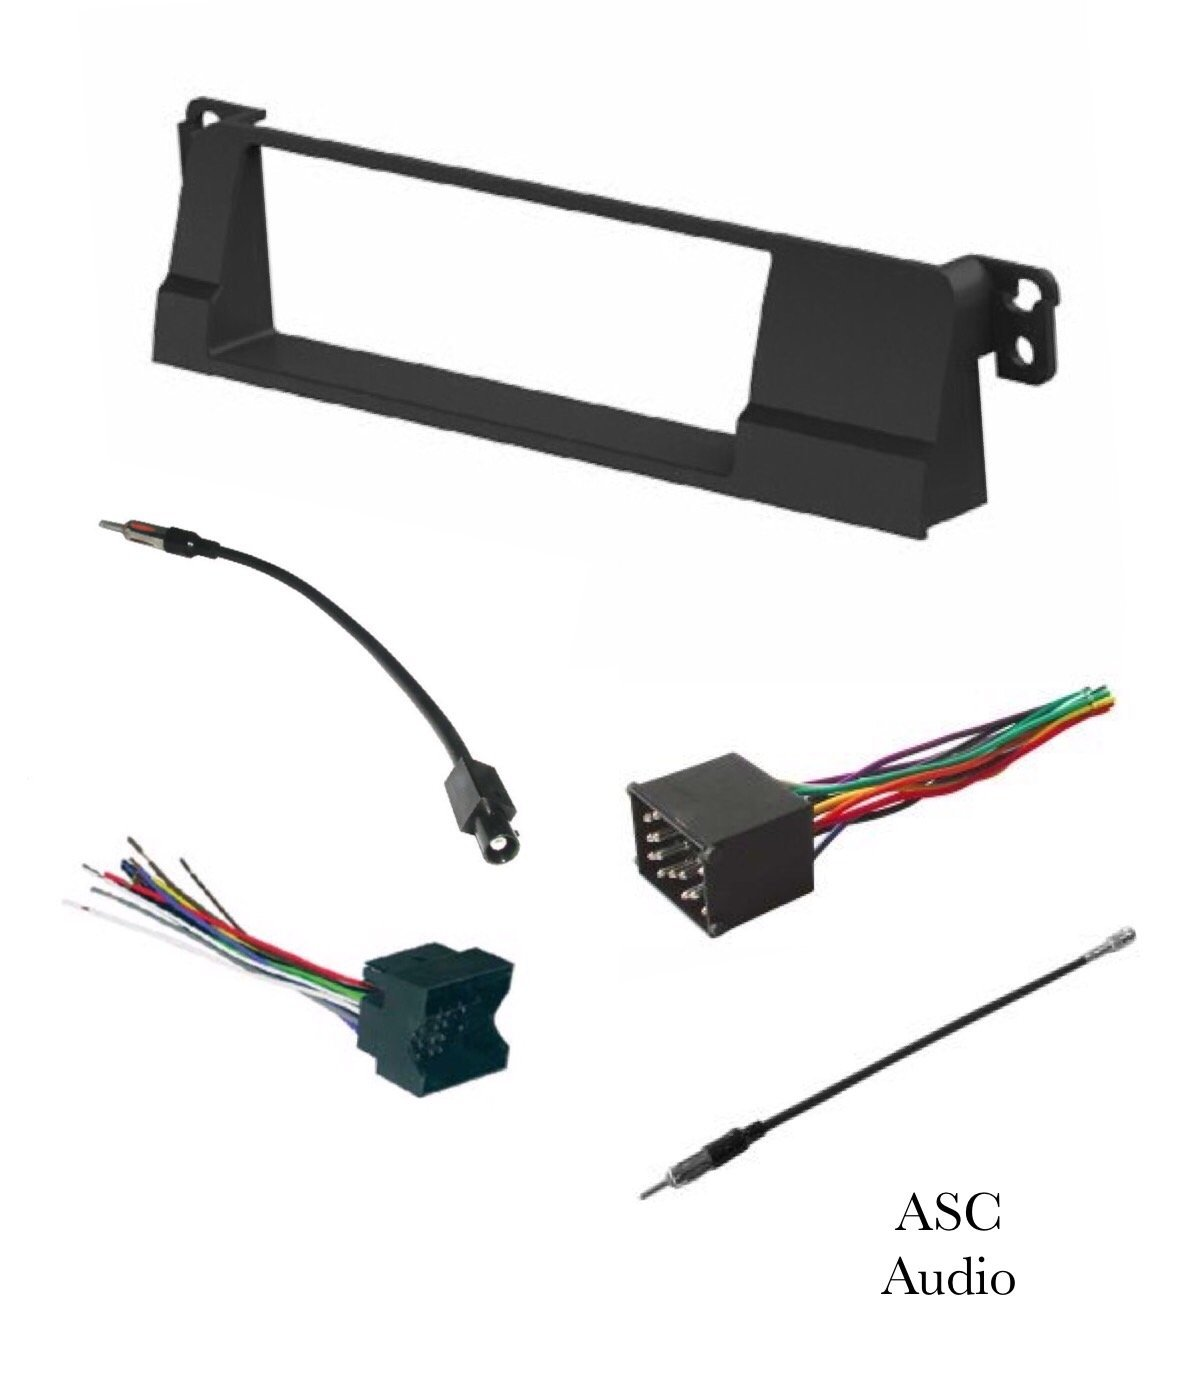 ASC Car Stereo Install Dash Kit, Wire Harness, and Antenna Adapter for installing a Single Din Aftermarket Radio for 1999 2000 2001 2002 2003 2004 2005 BMW E46 318 323 325 328 330 by ASC Audio